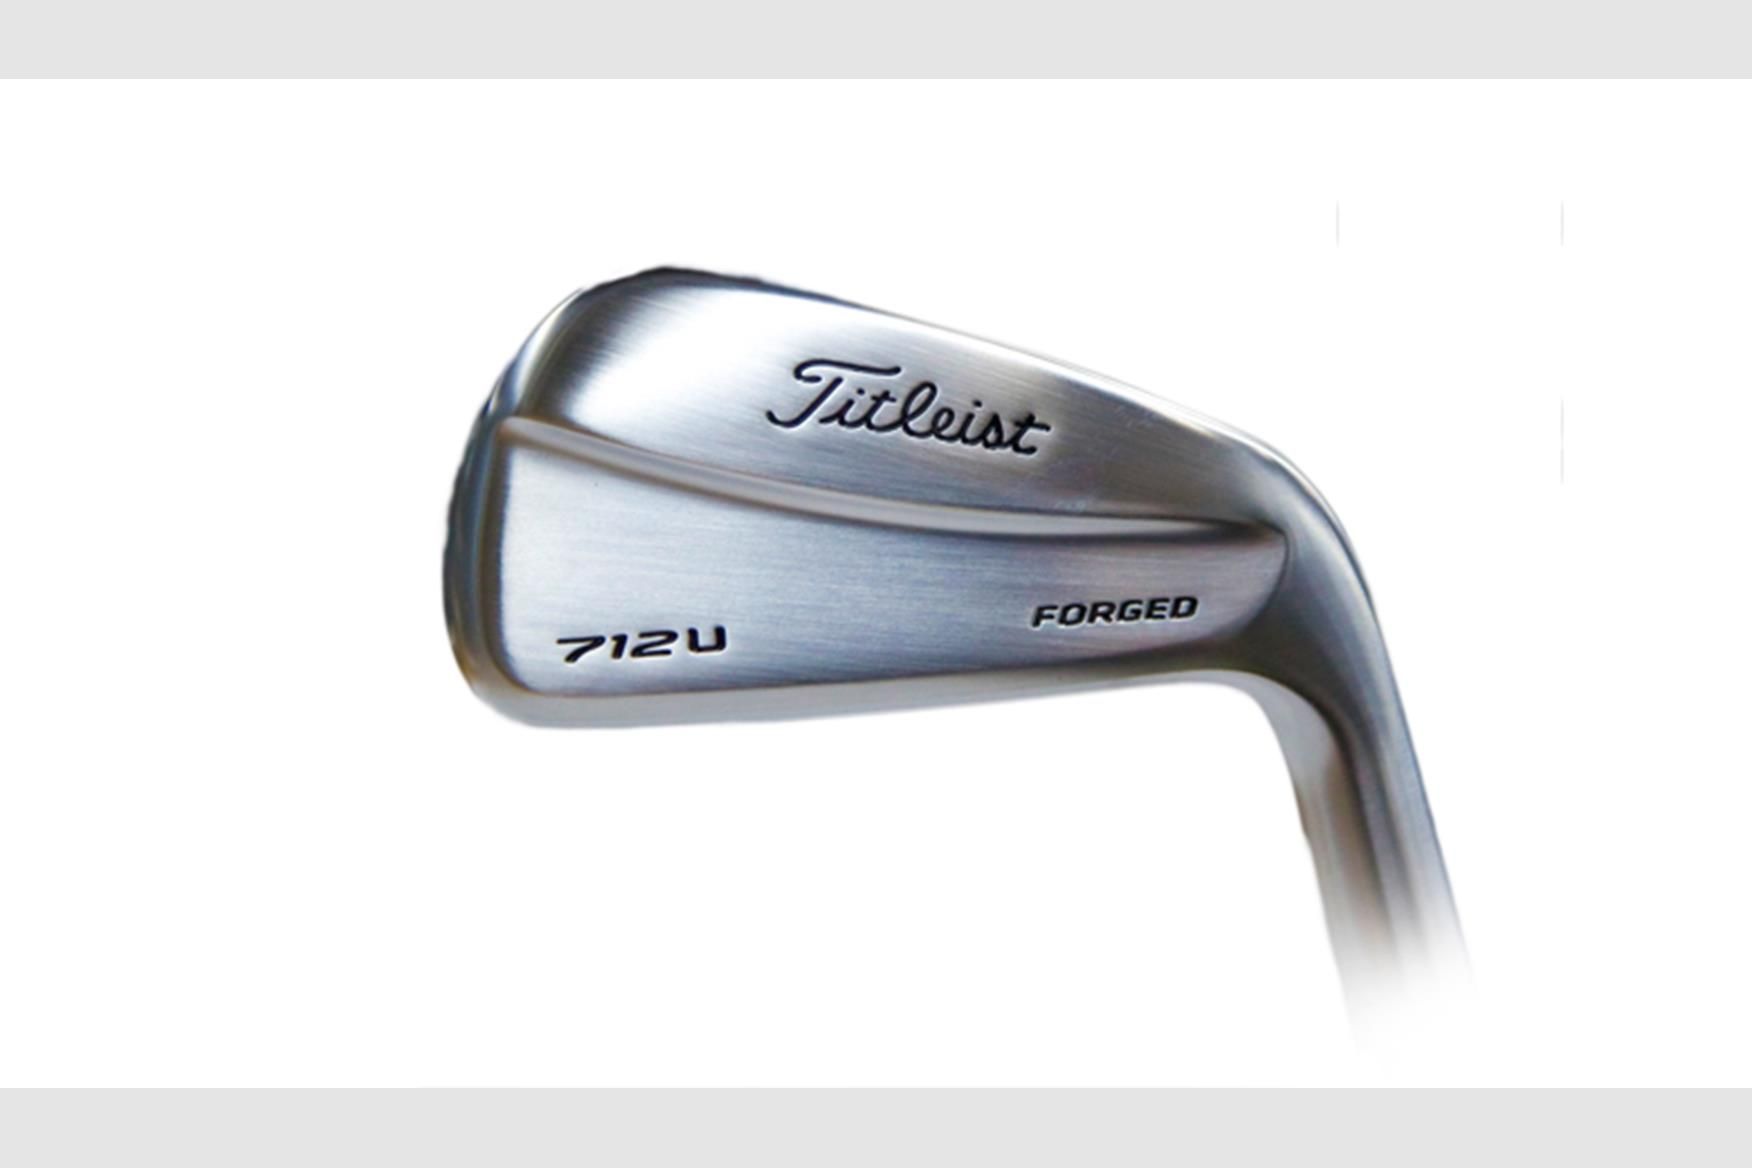 Leist 712u Driving Iron Review